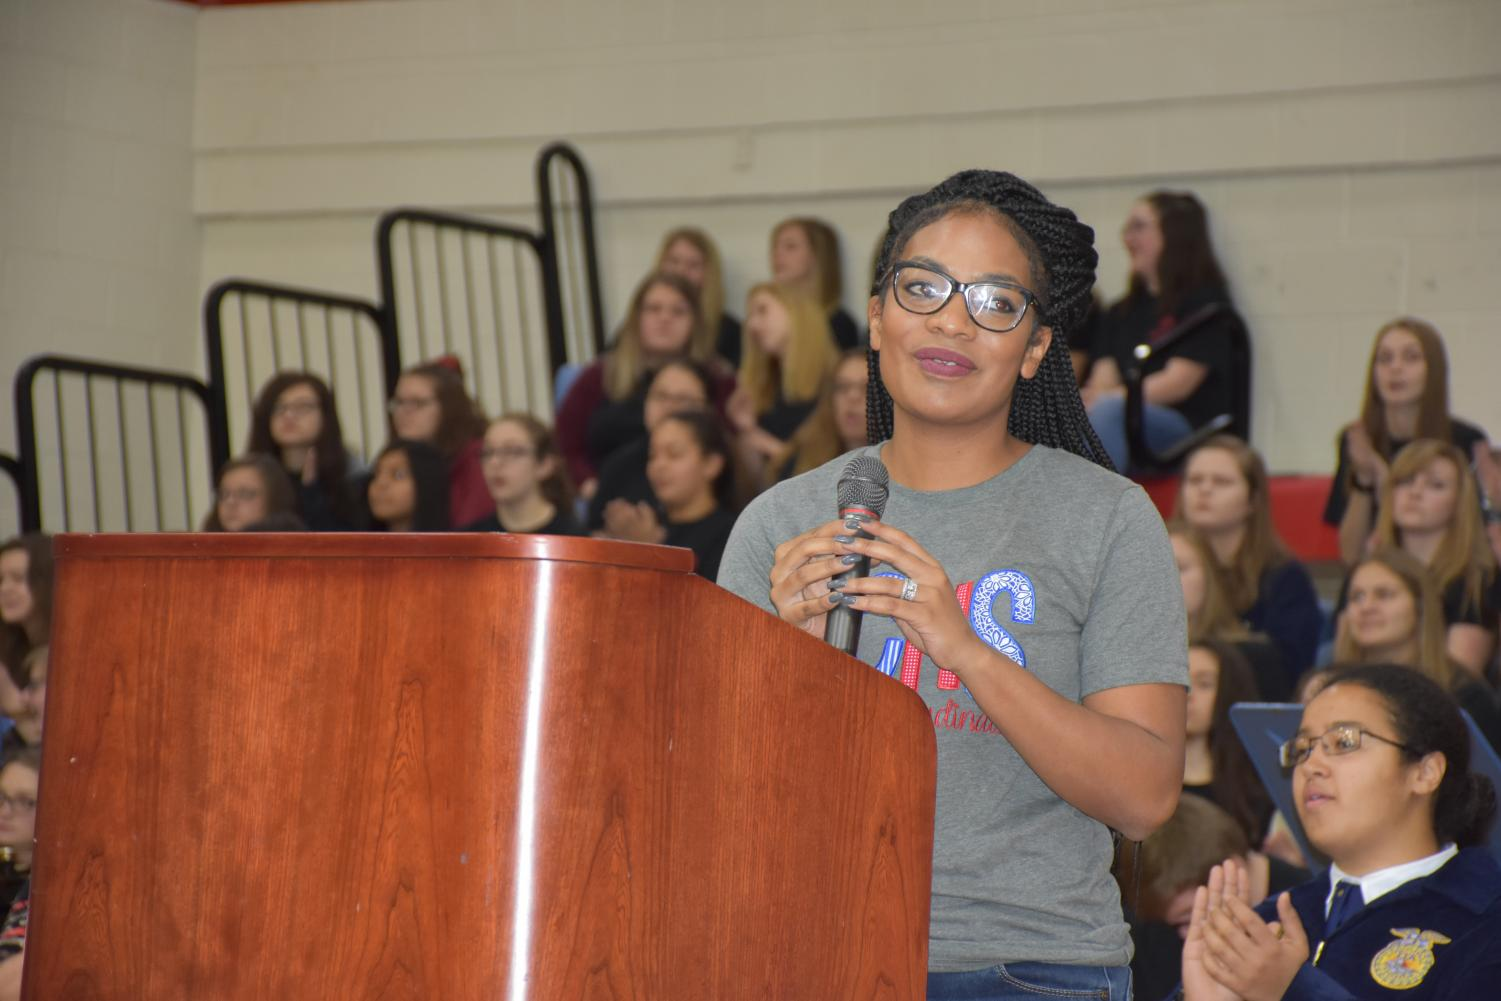 Principal+Meocha+Williams+welcomed+the+students+to+the+annual+Thanksgiving+assembly.+